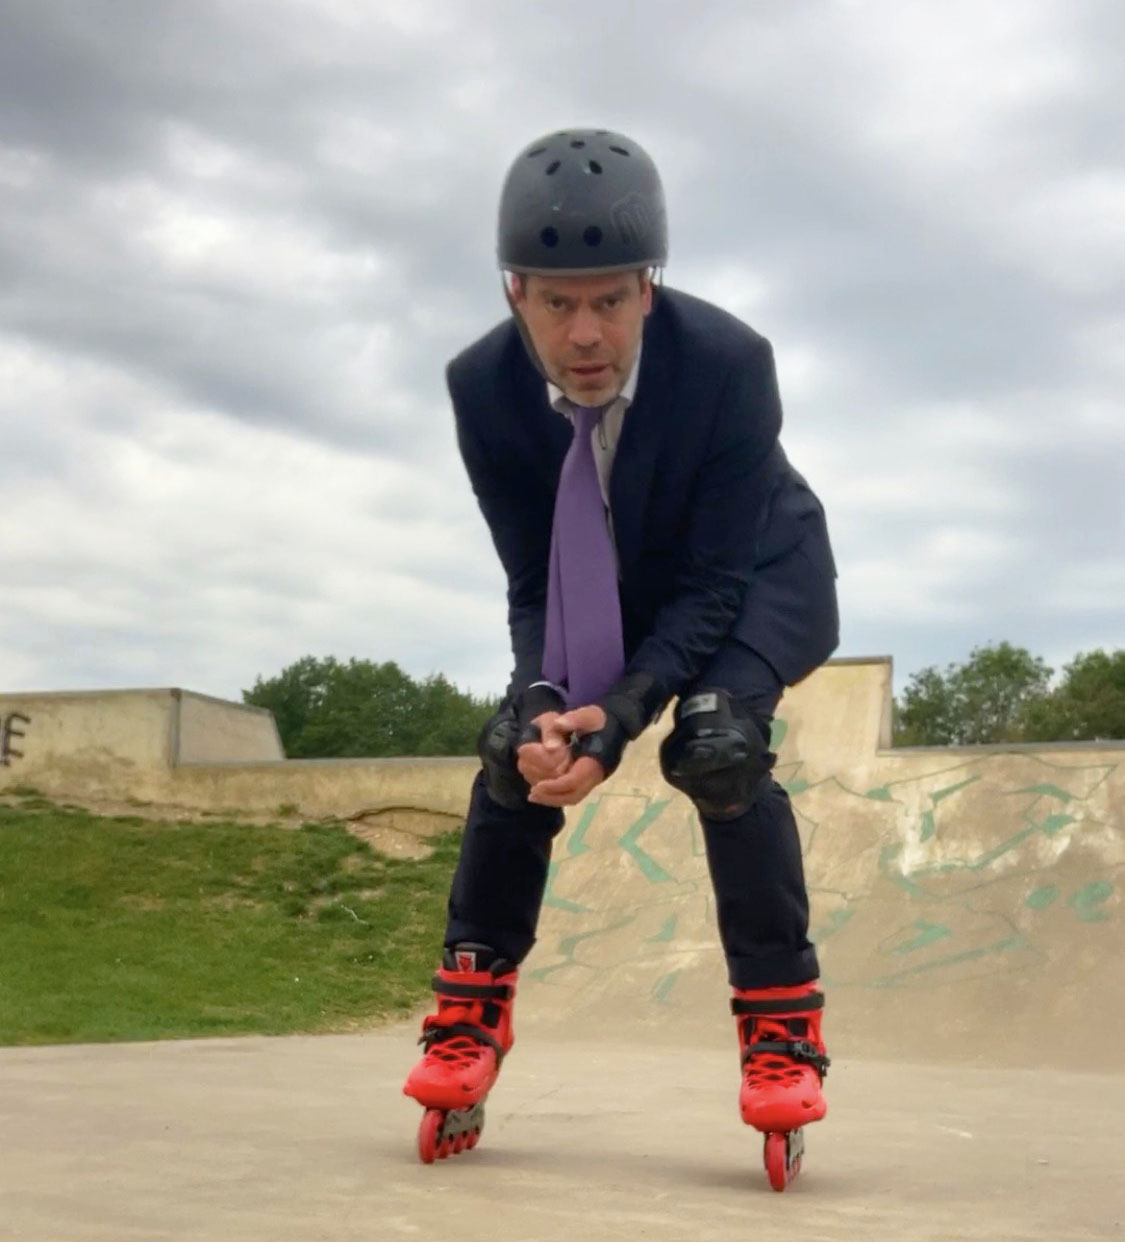 Inline skates in use at the skate park.